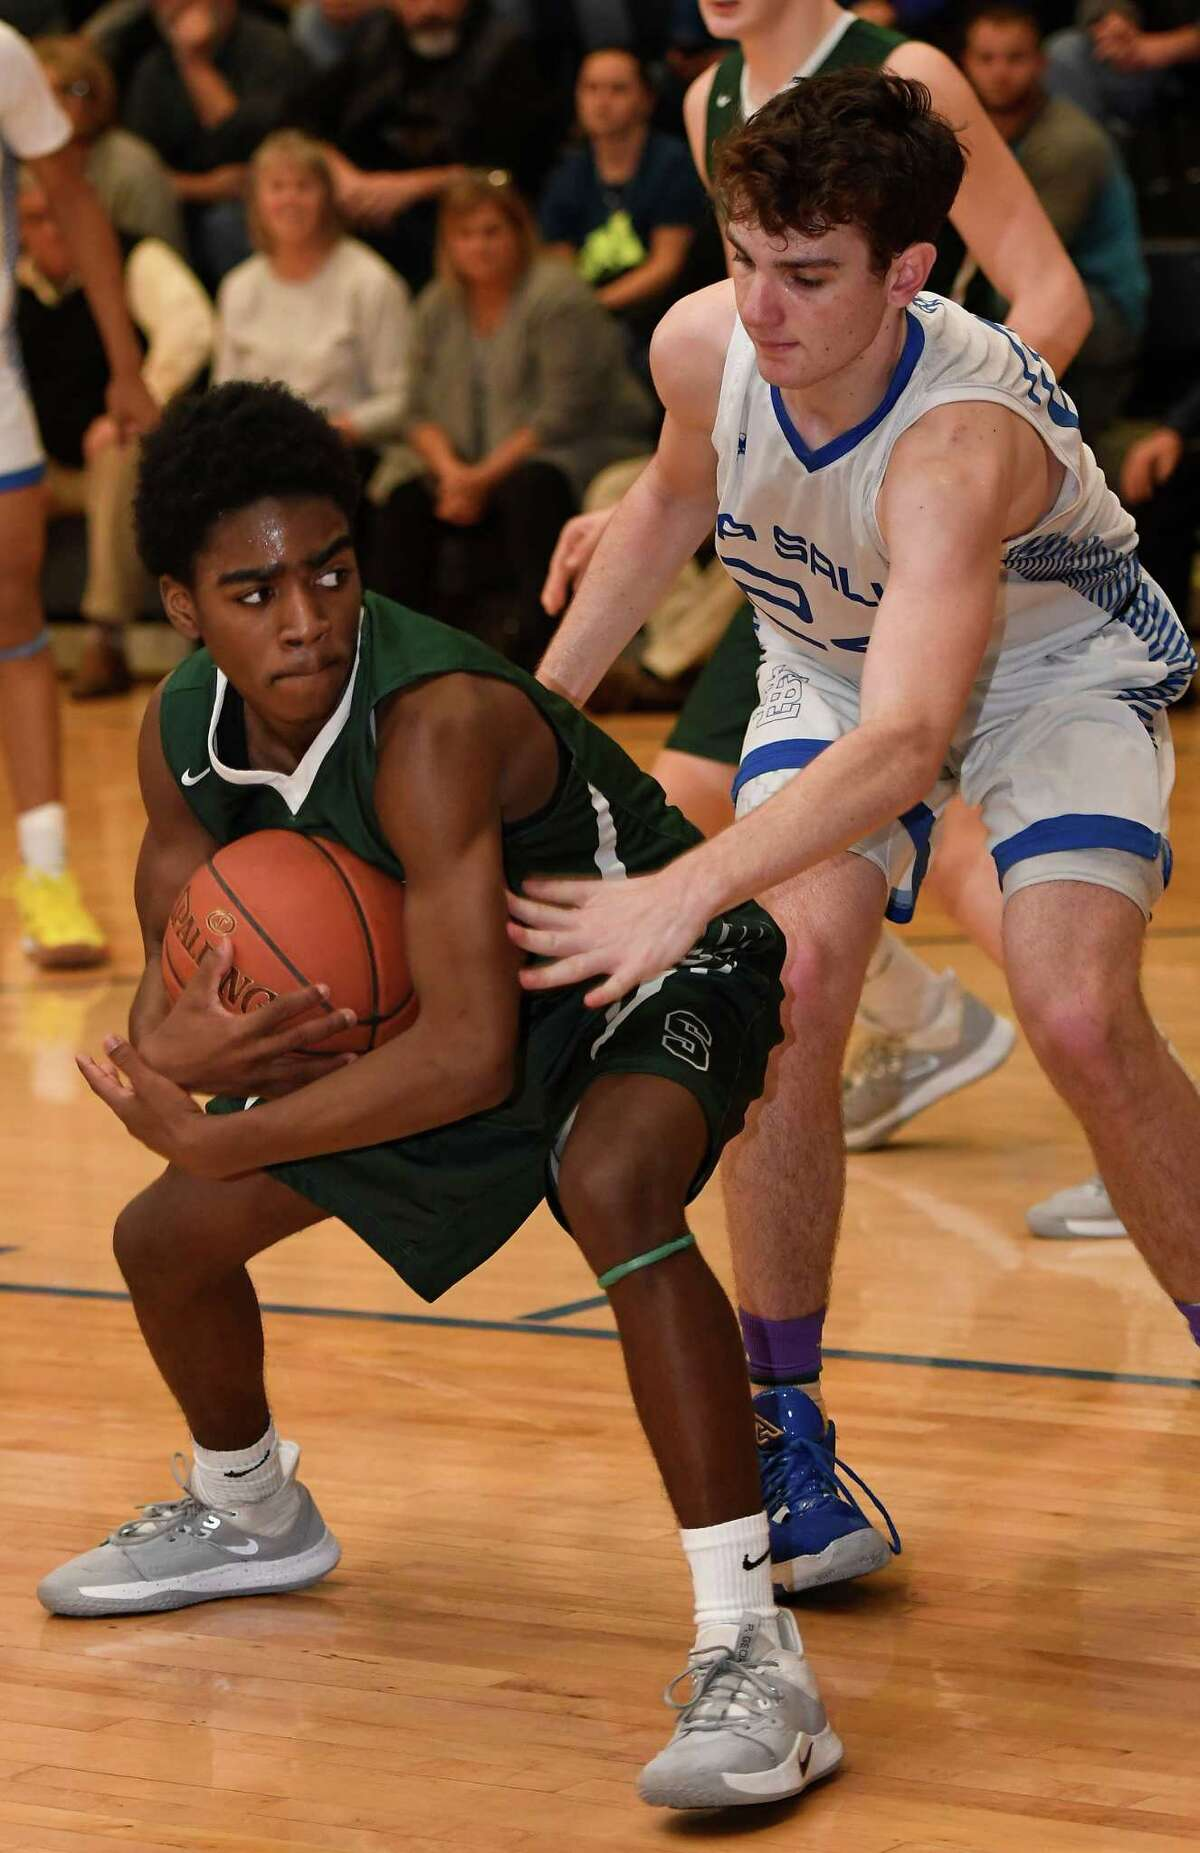 Schalmont's Trent Randle recovers the ball before LaSalle's Gabe Lucarelli during a game on Friday, Jan. 31, 2020, in Troy, N.Y. (Jenn March, Special to the Times Union )